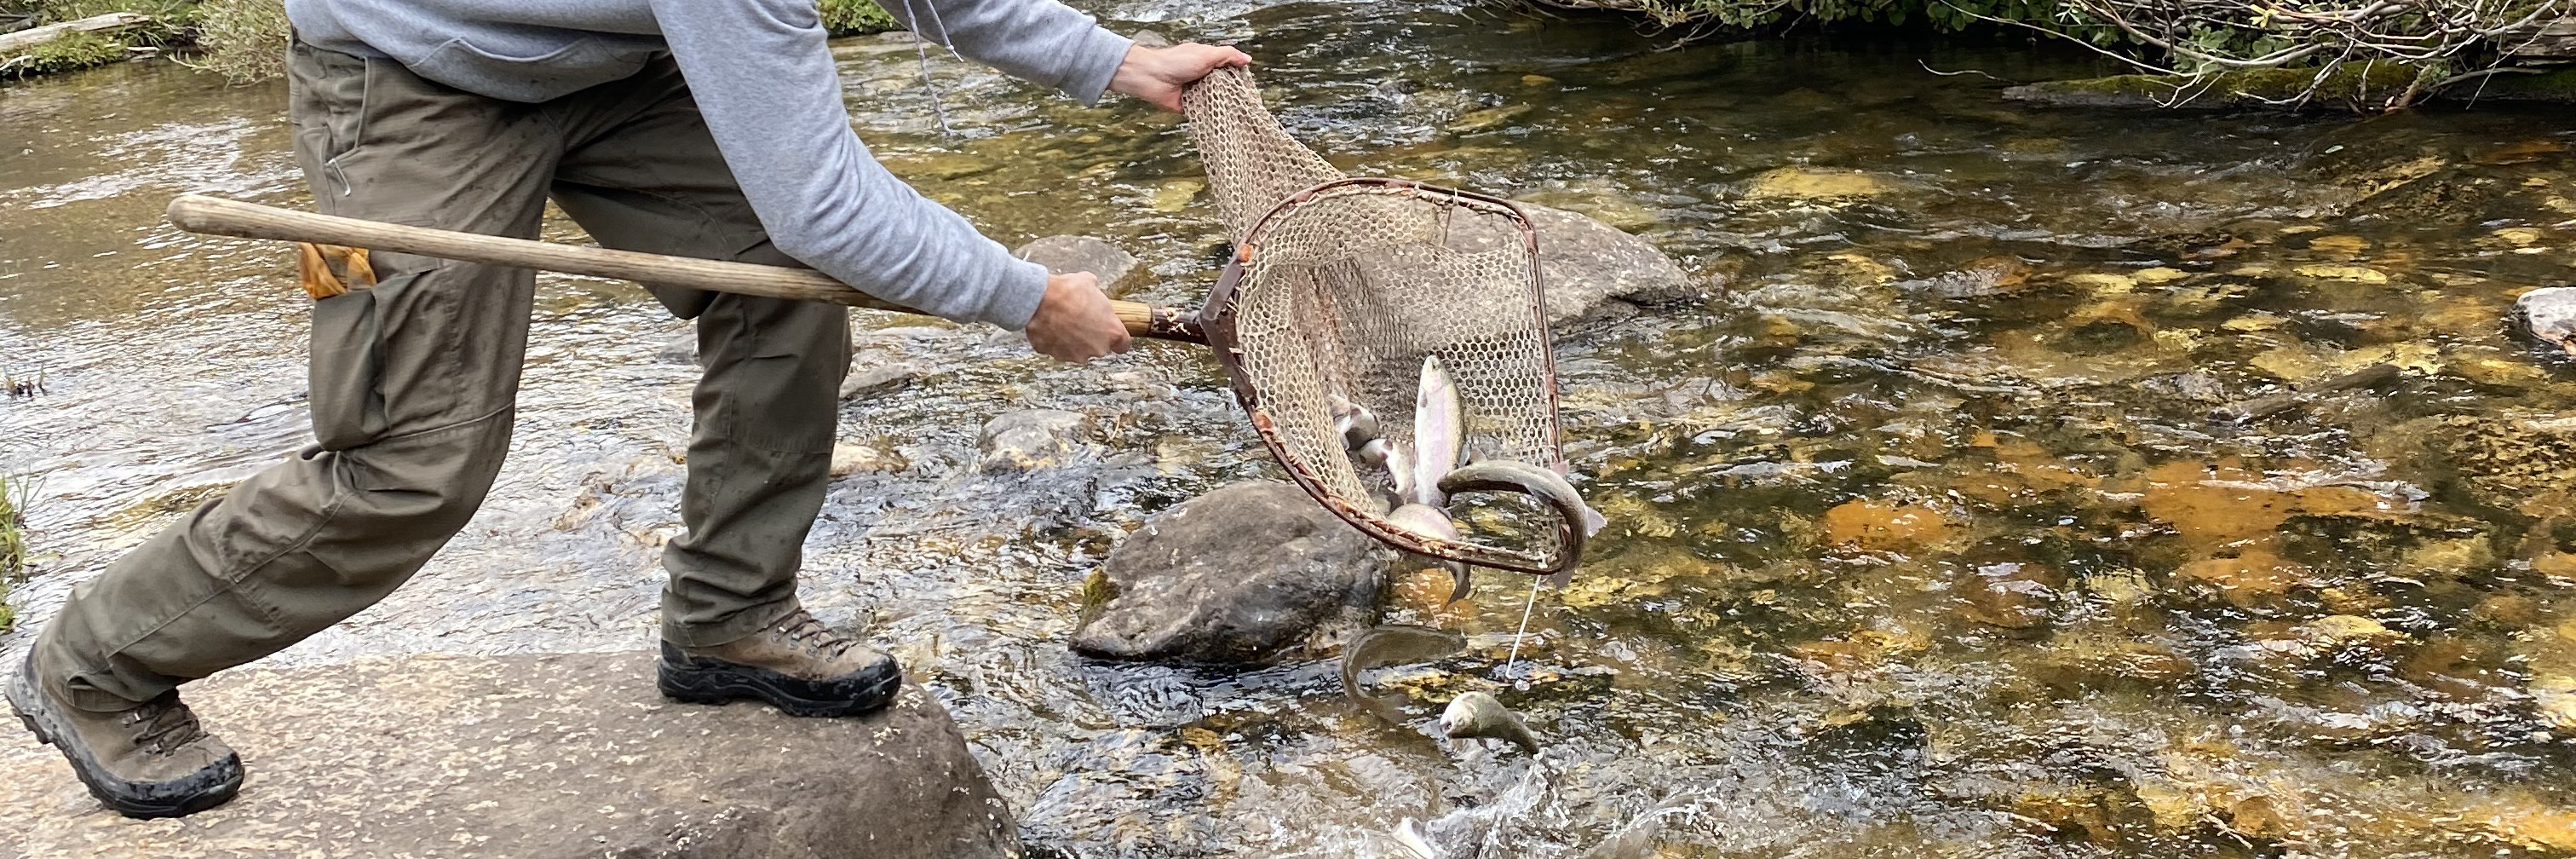 Fish in a net are emptied into a shallow stream